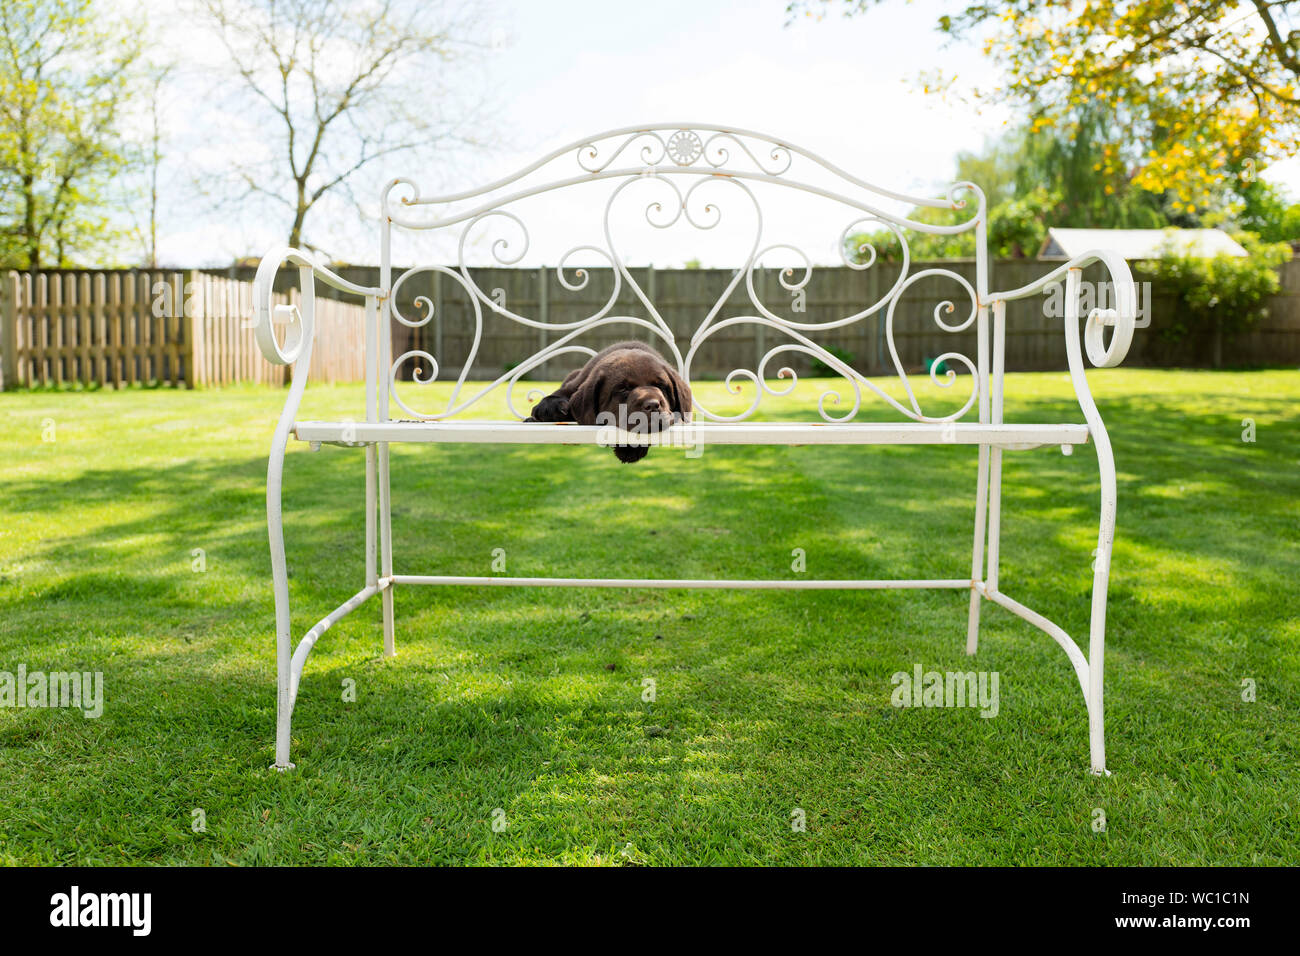 Swell Six Week Old Chocolate Labrador Puppy Lying On A Metal Ocoug Best Dining Table And Chair Ideas Images Ocougorg